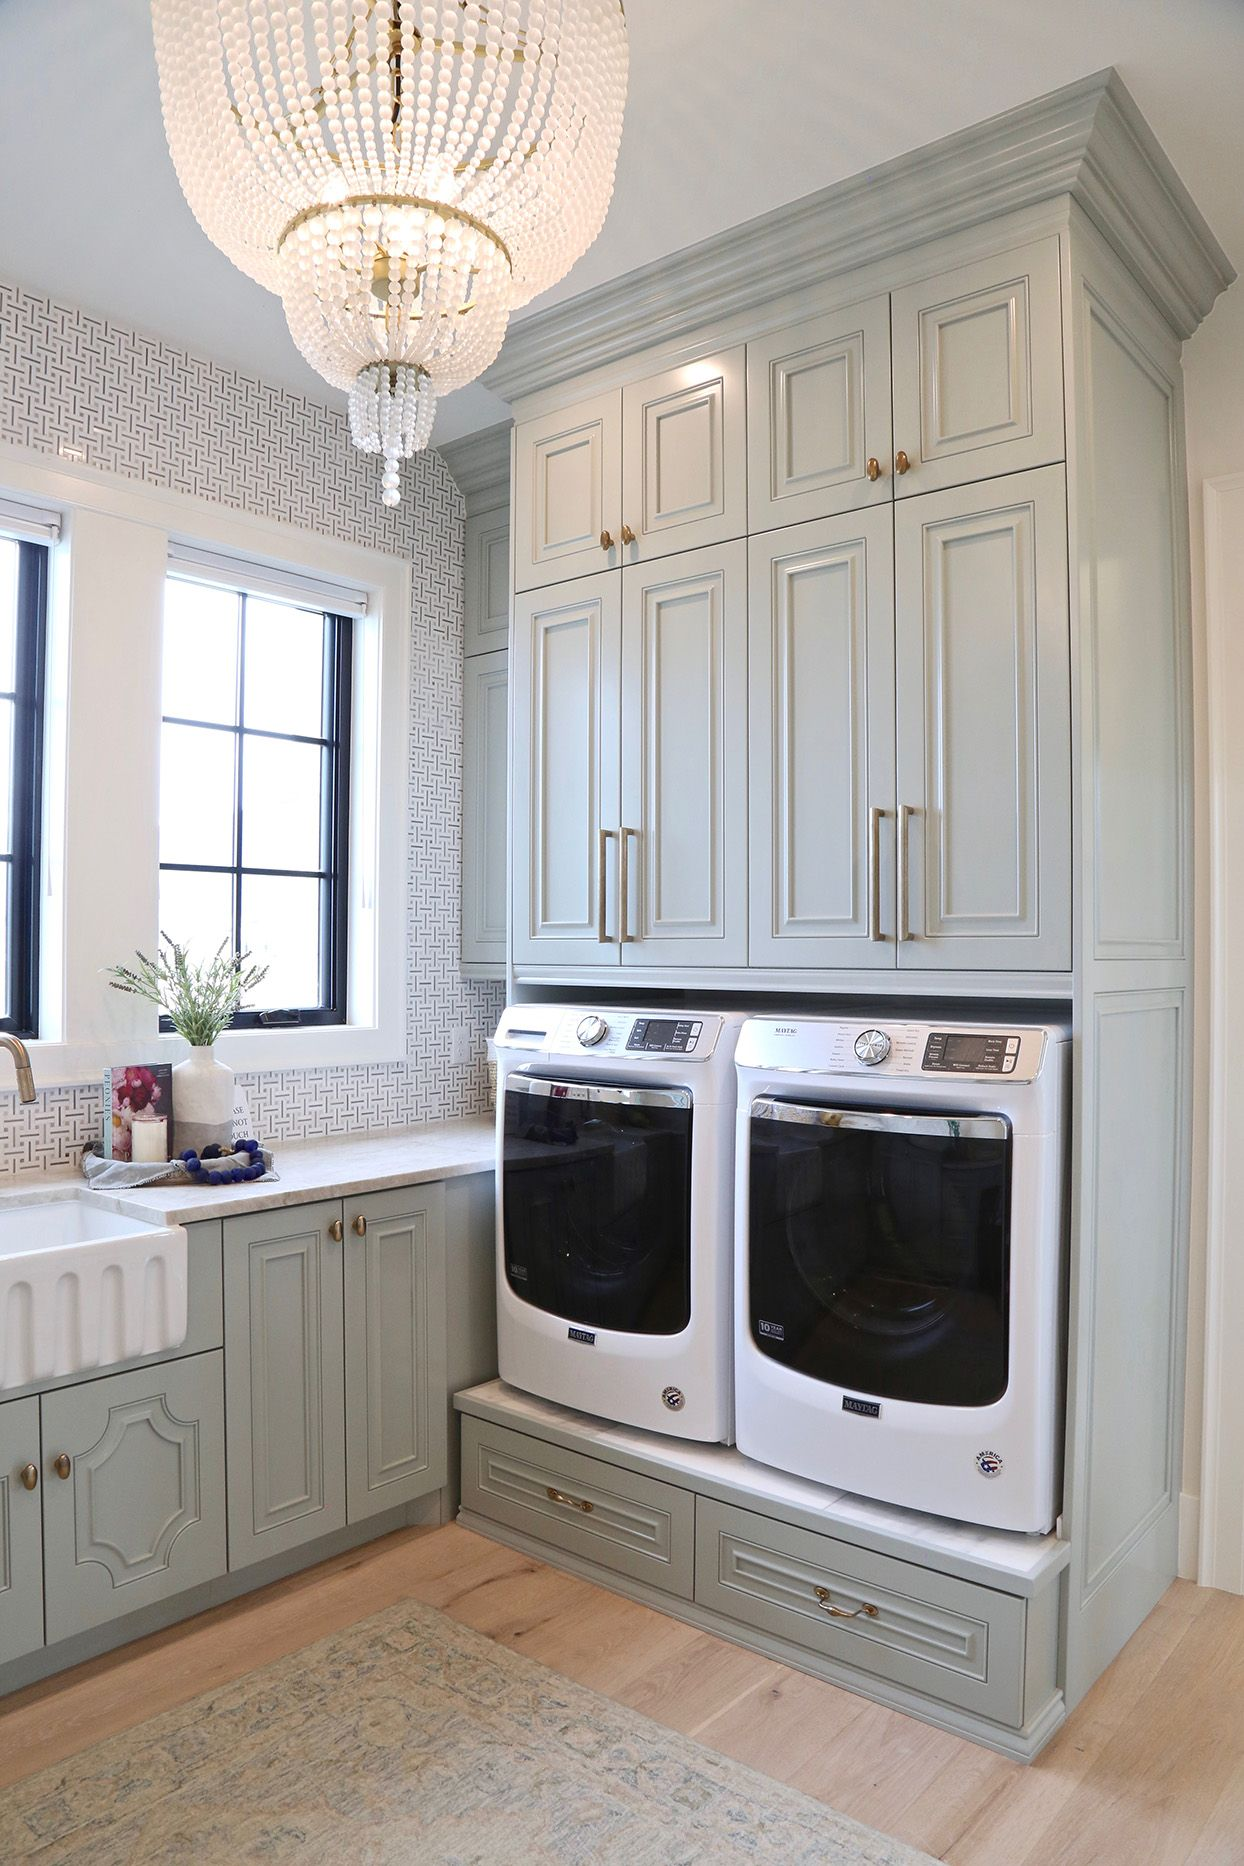 Goodbye Gray Hello Earth Tones Our 2020 Paint Color Forecast Dream Laundry Room Large Laundry Rooms Home